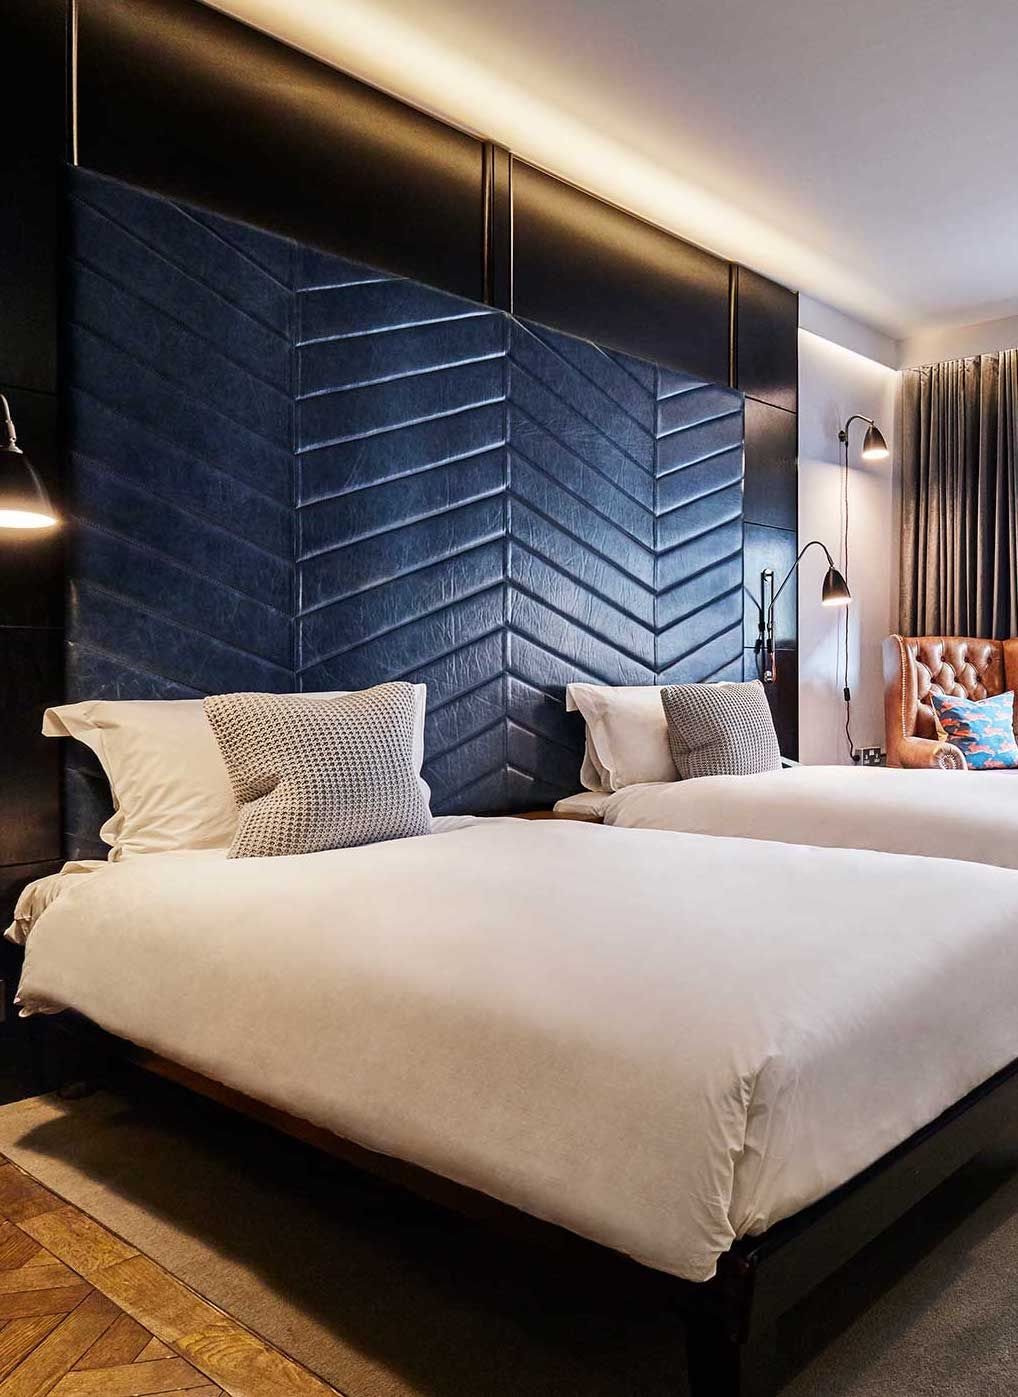 Shoreditch Design Rooms: Our Cosy-Twin Room Over At The Hoxton, Shoreditch